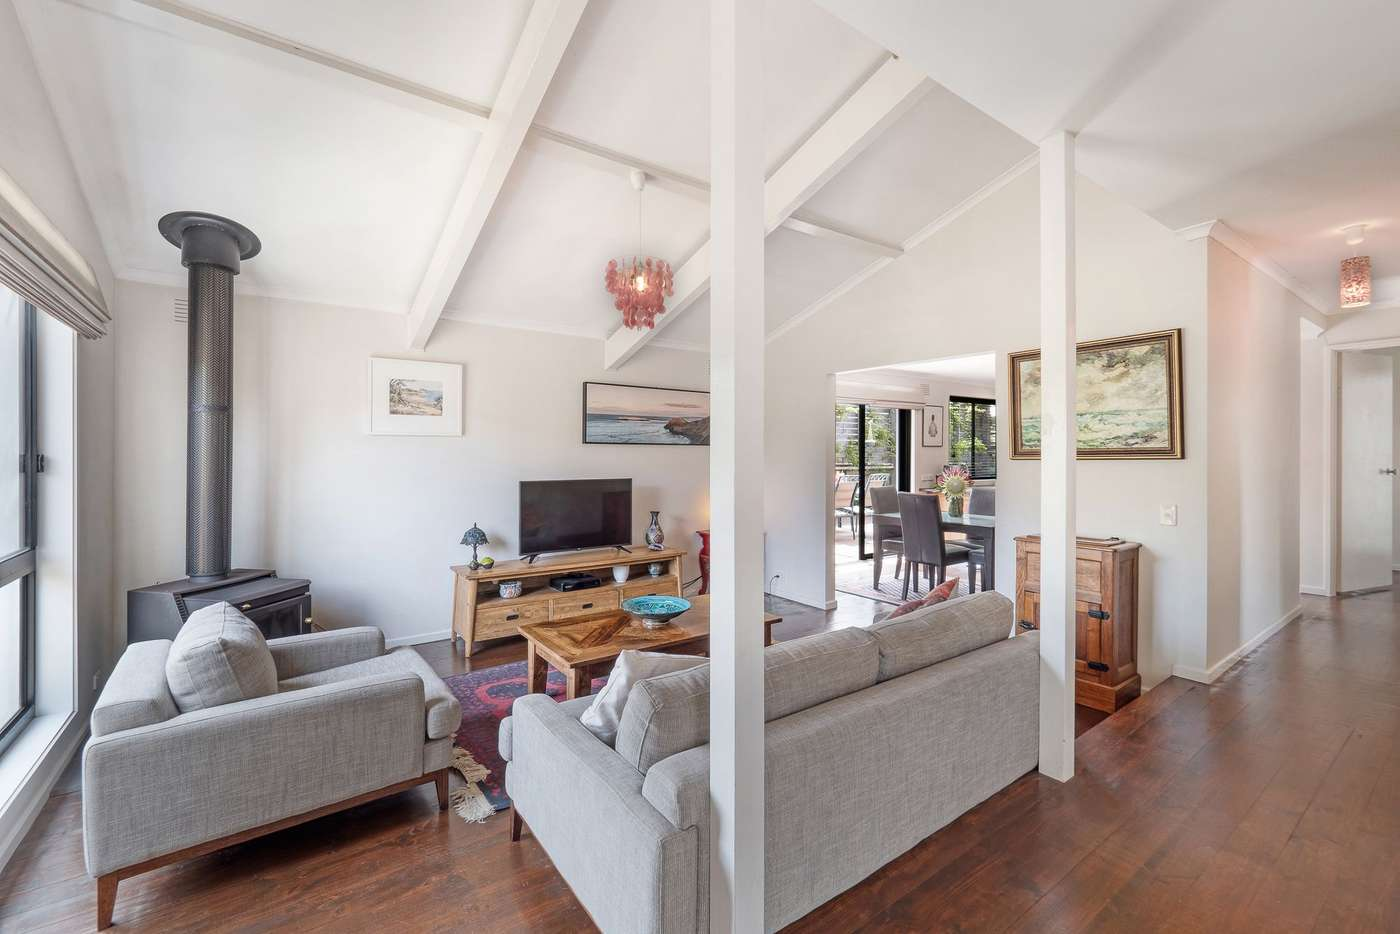 Fifth view of Homely house listing, 8 Dixon Street, Surf Beach VIC 3922